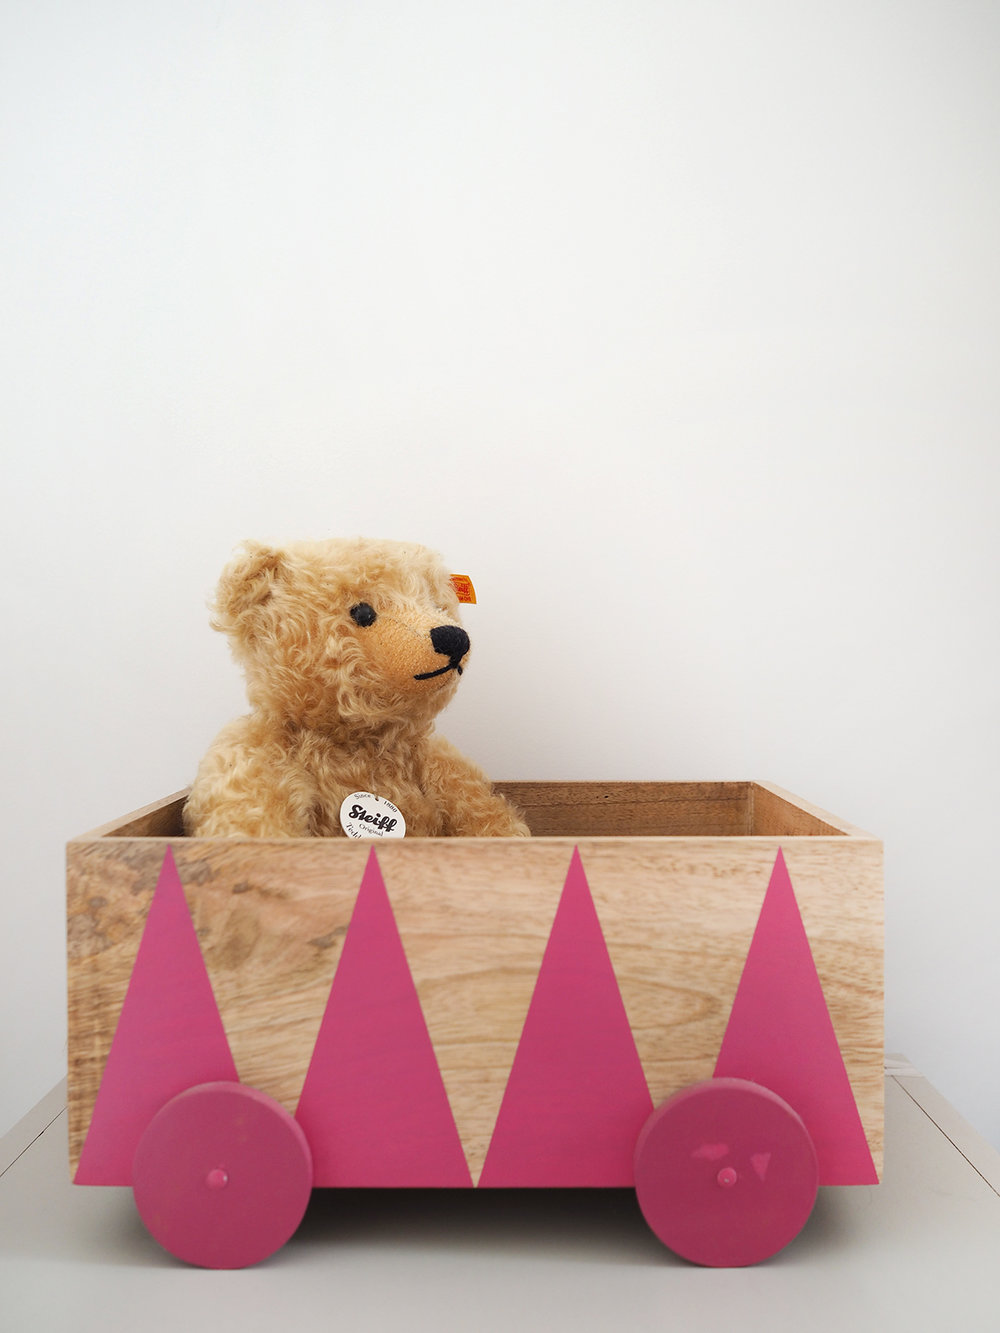 Steiff teddy, gift from grandparents; Wooden box from H&M, no longer available.